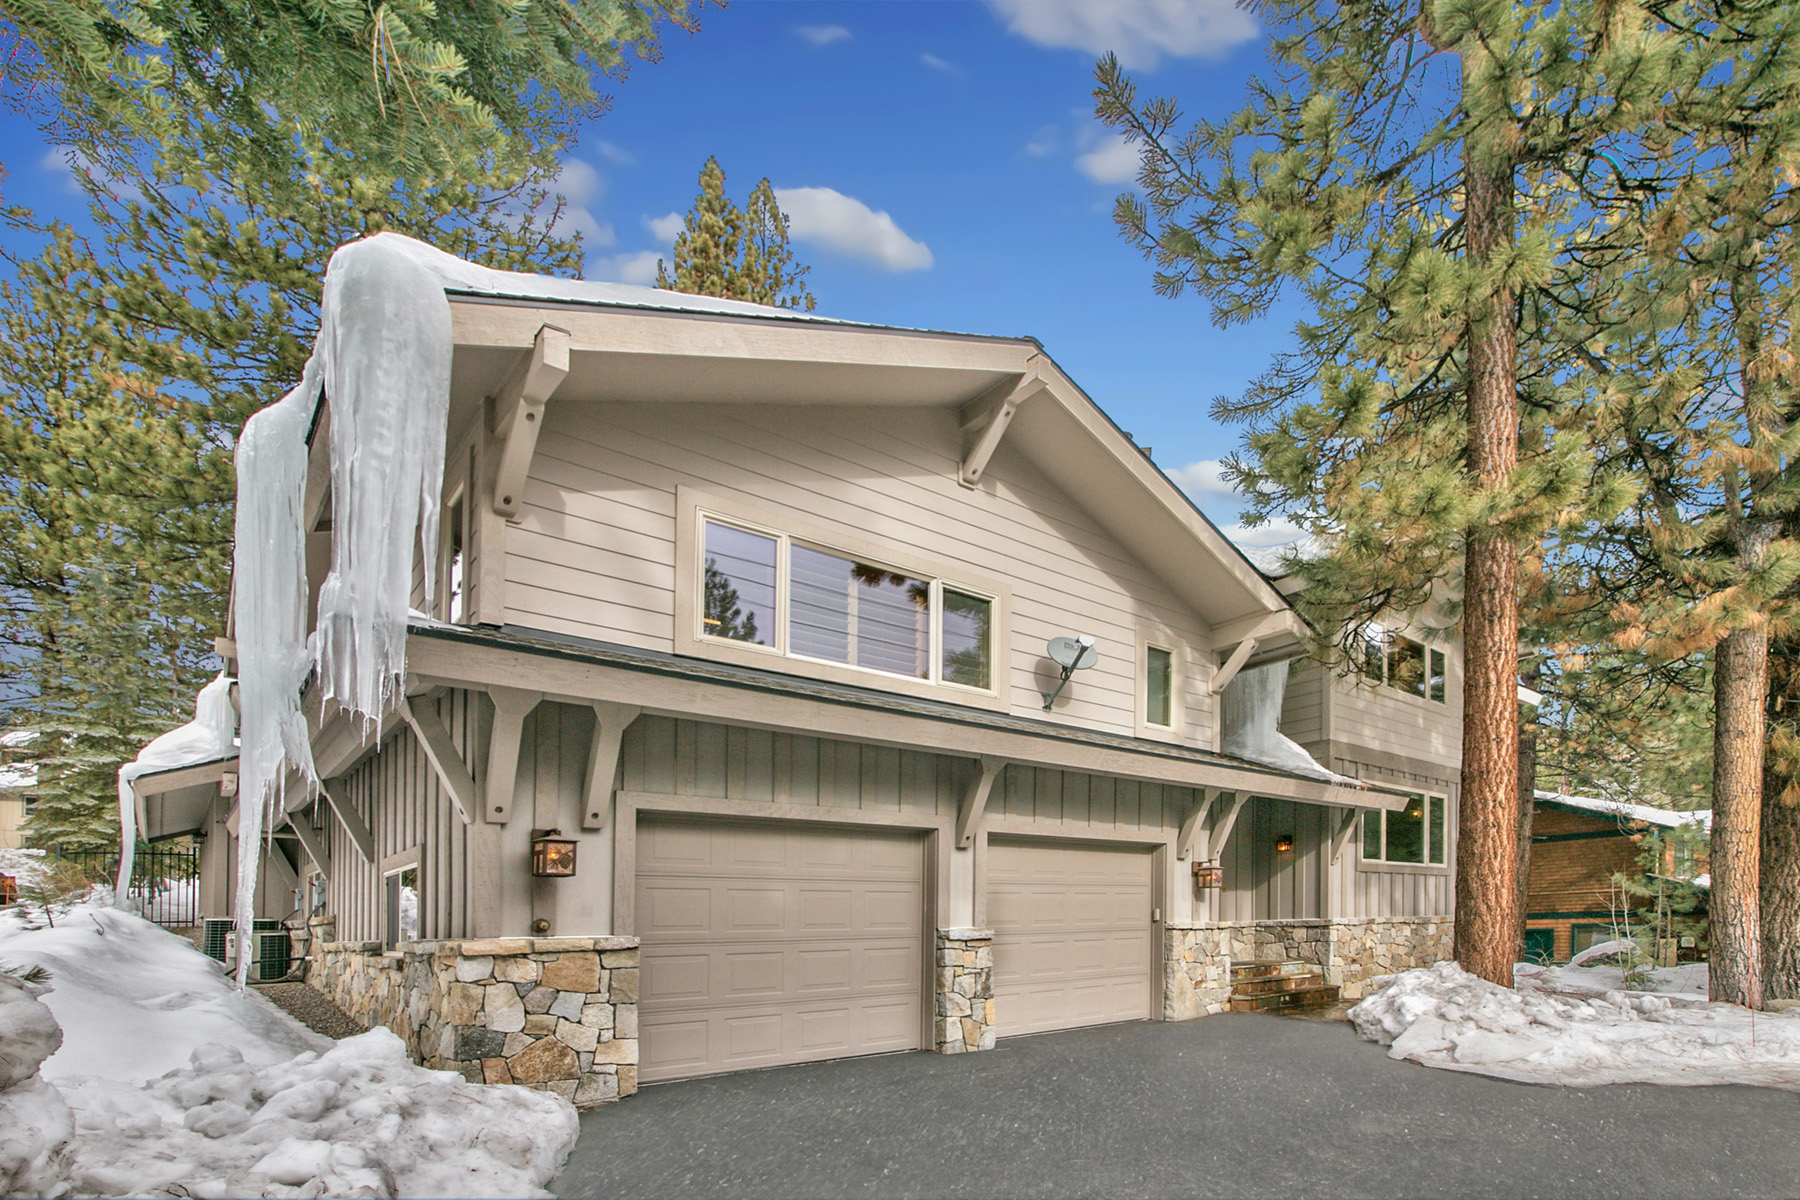 Maison unifamiliale pour l Vente à 629 Village Boulevard Incline Village, Nevada, 89451 États-Unis